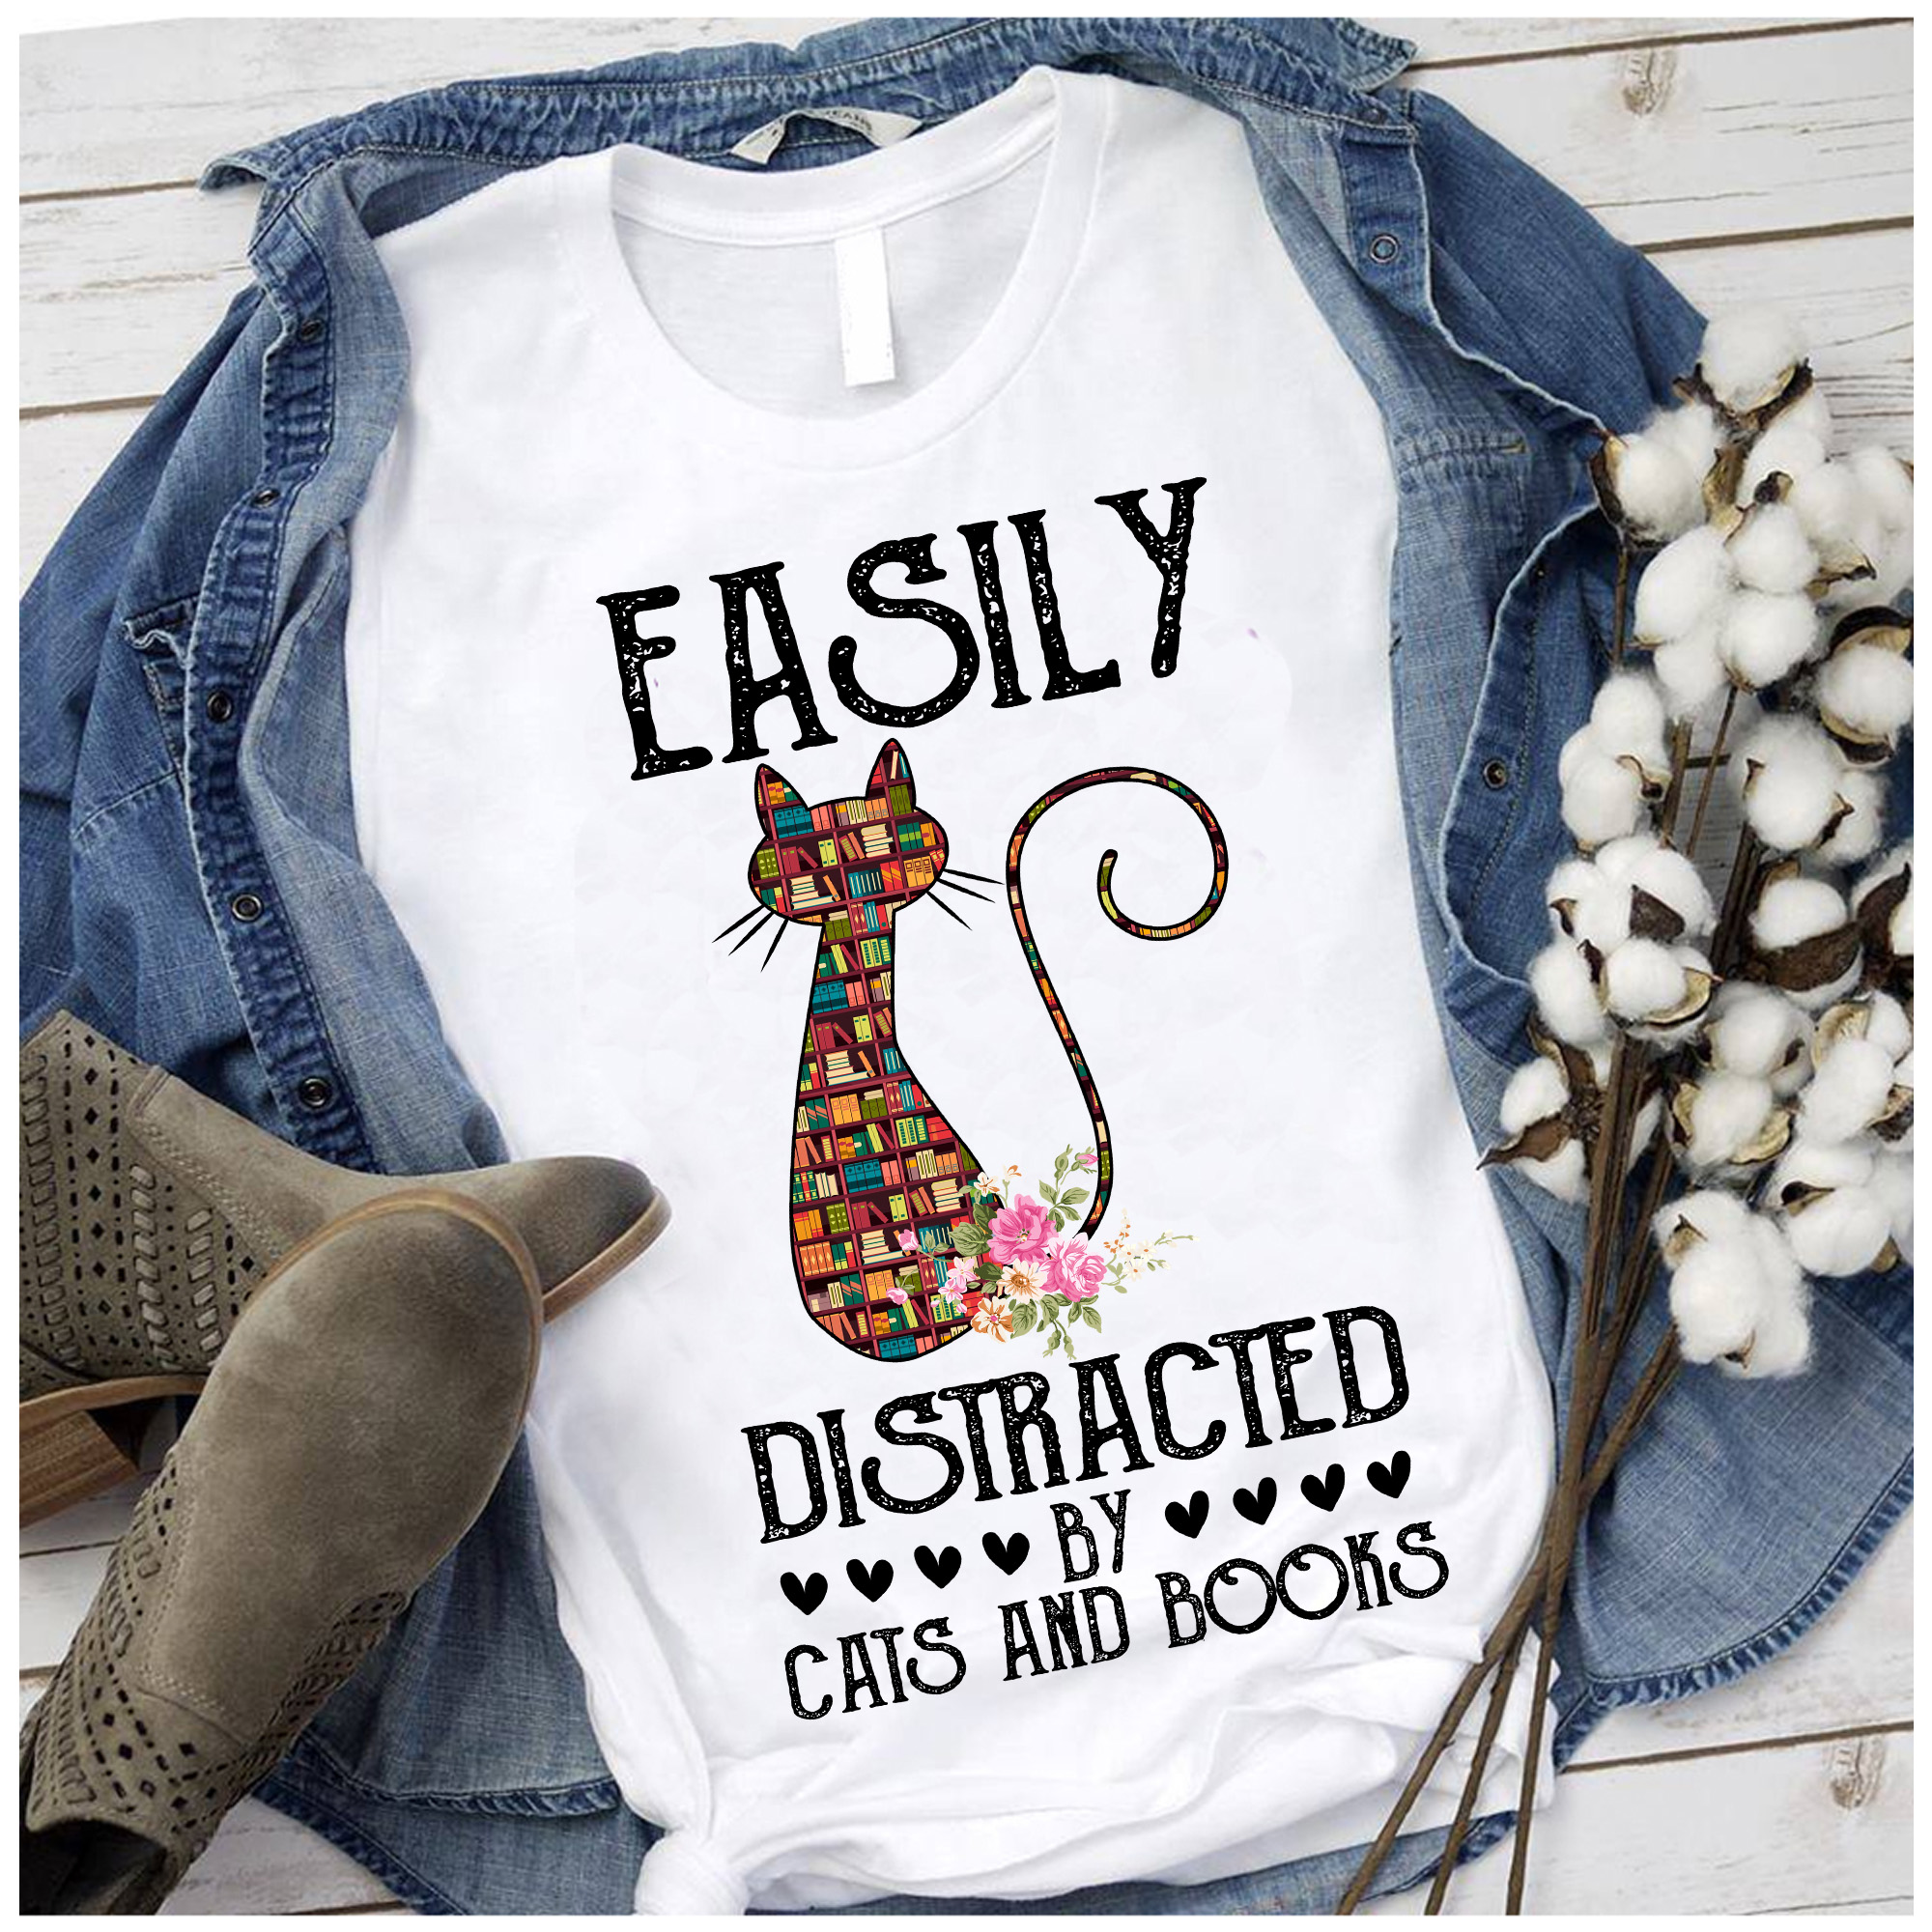 Flower Cat Shirt Easily Distracted By Cats And Books